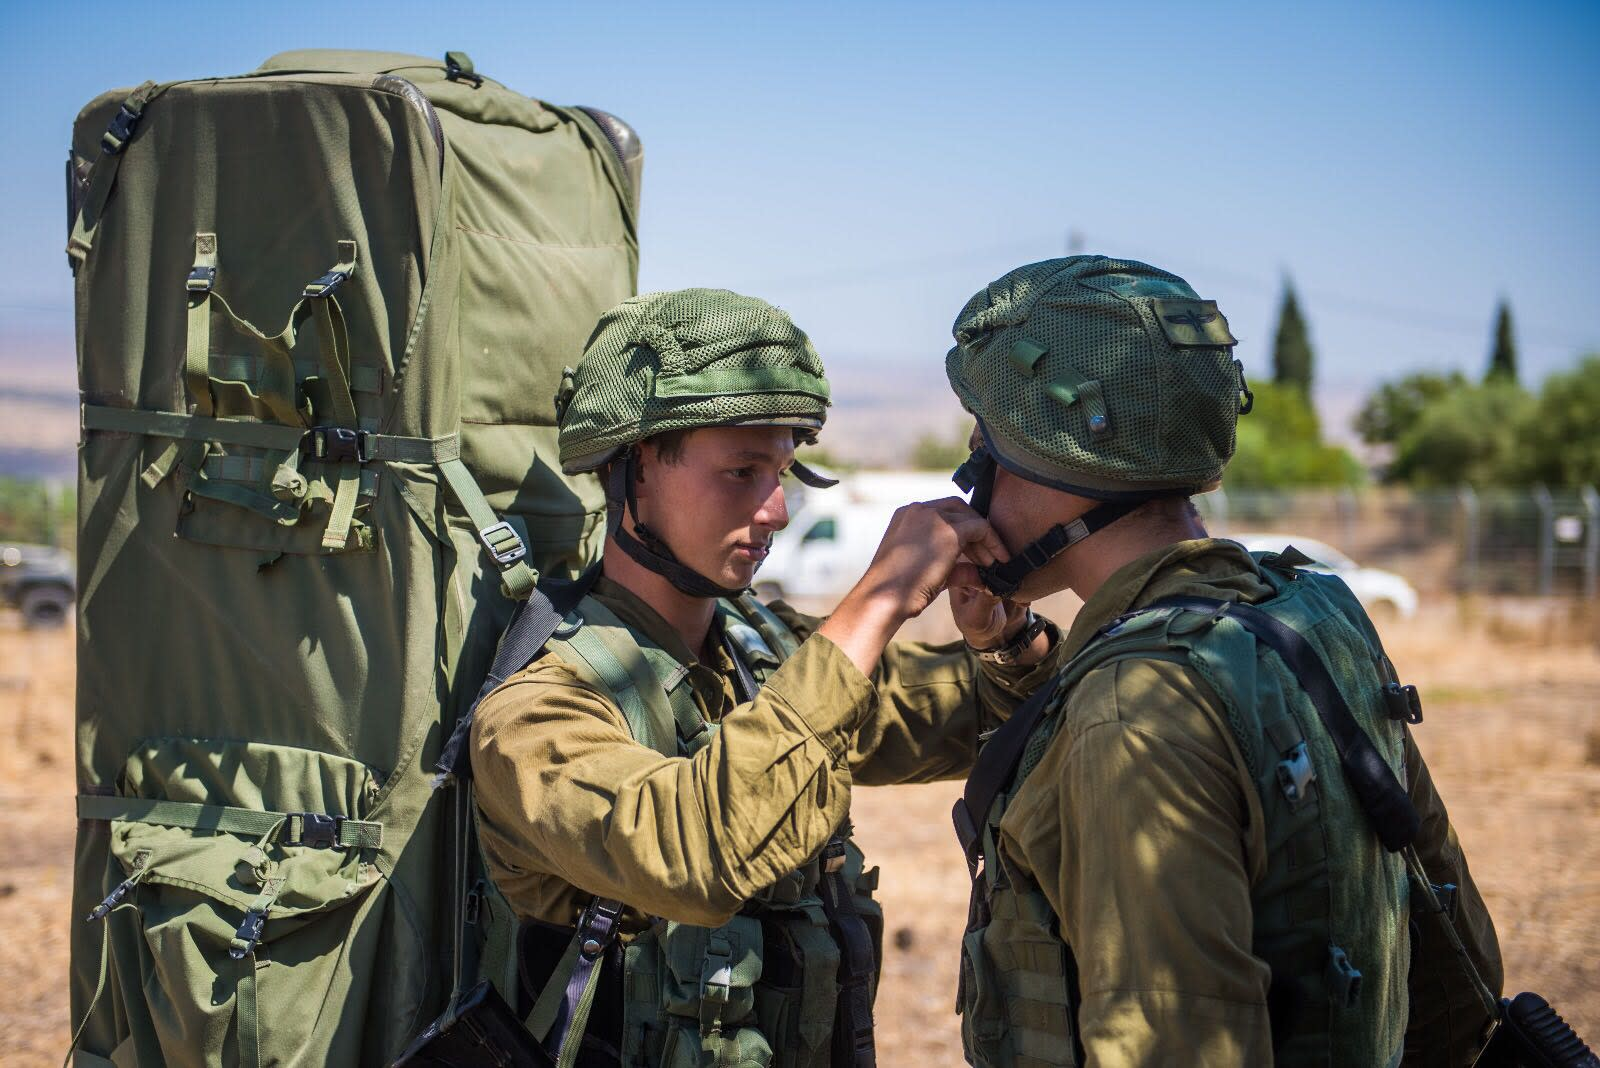 IDF soldiers participating in the Or HaDagan Northern Command drill, September, 2017. (IDF Spokesperson's Unit)